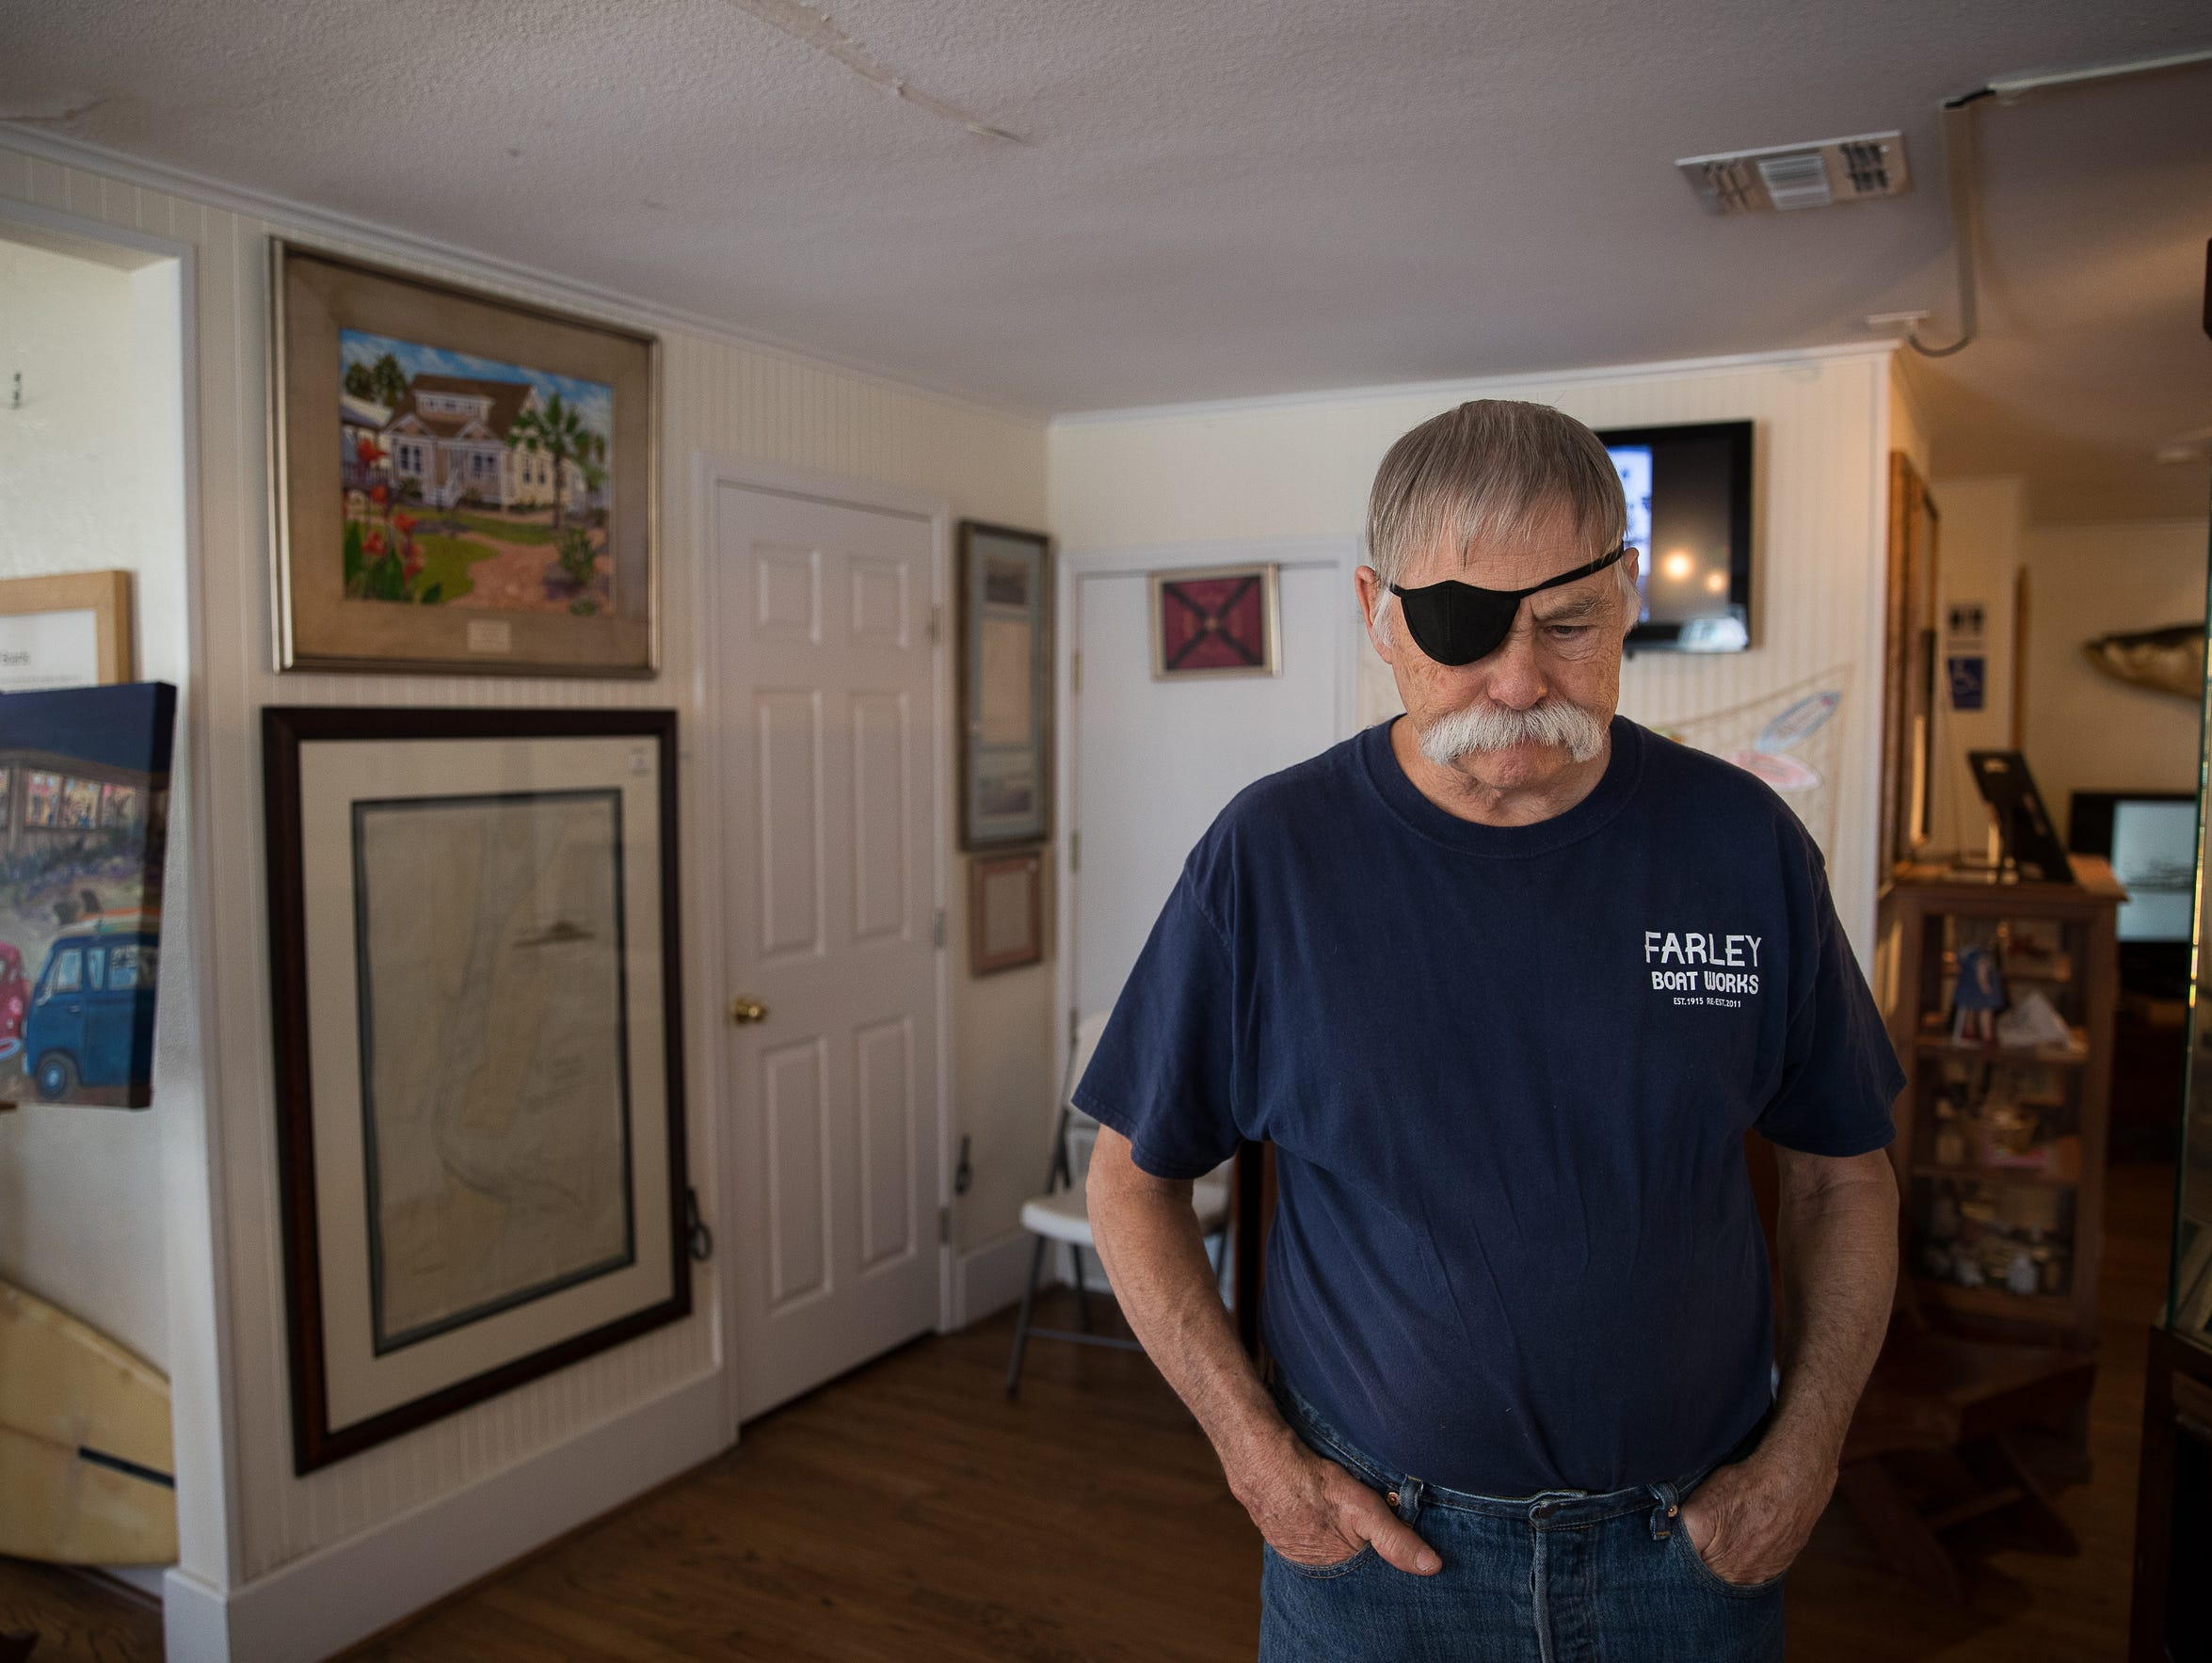 Old Town Committee member Rick Pratt, pictured in the Port Aransas Museum, has described the aftermath of Hurricane Harvey as an important point in time where the city could see mass change. The committee aims to preserve the historic elements of Old Town.